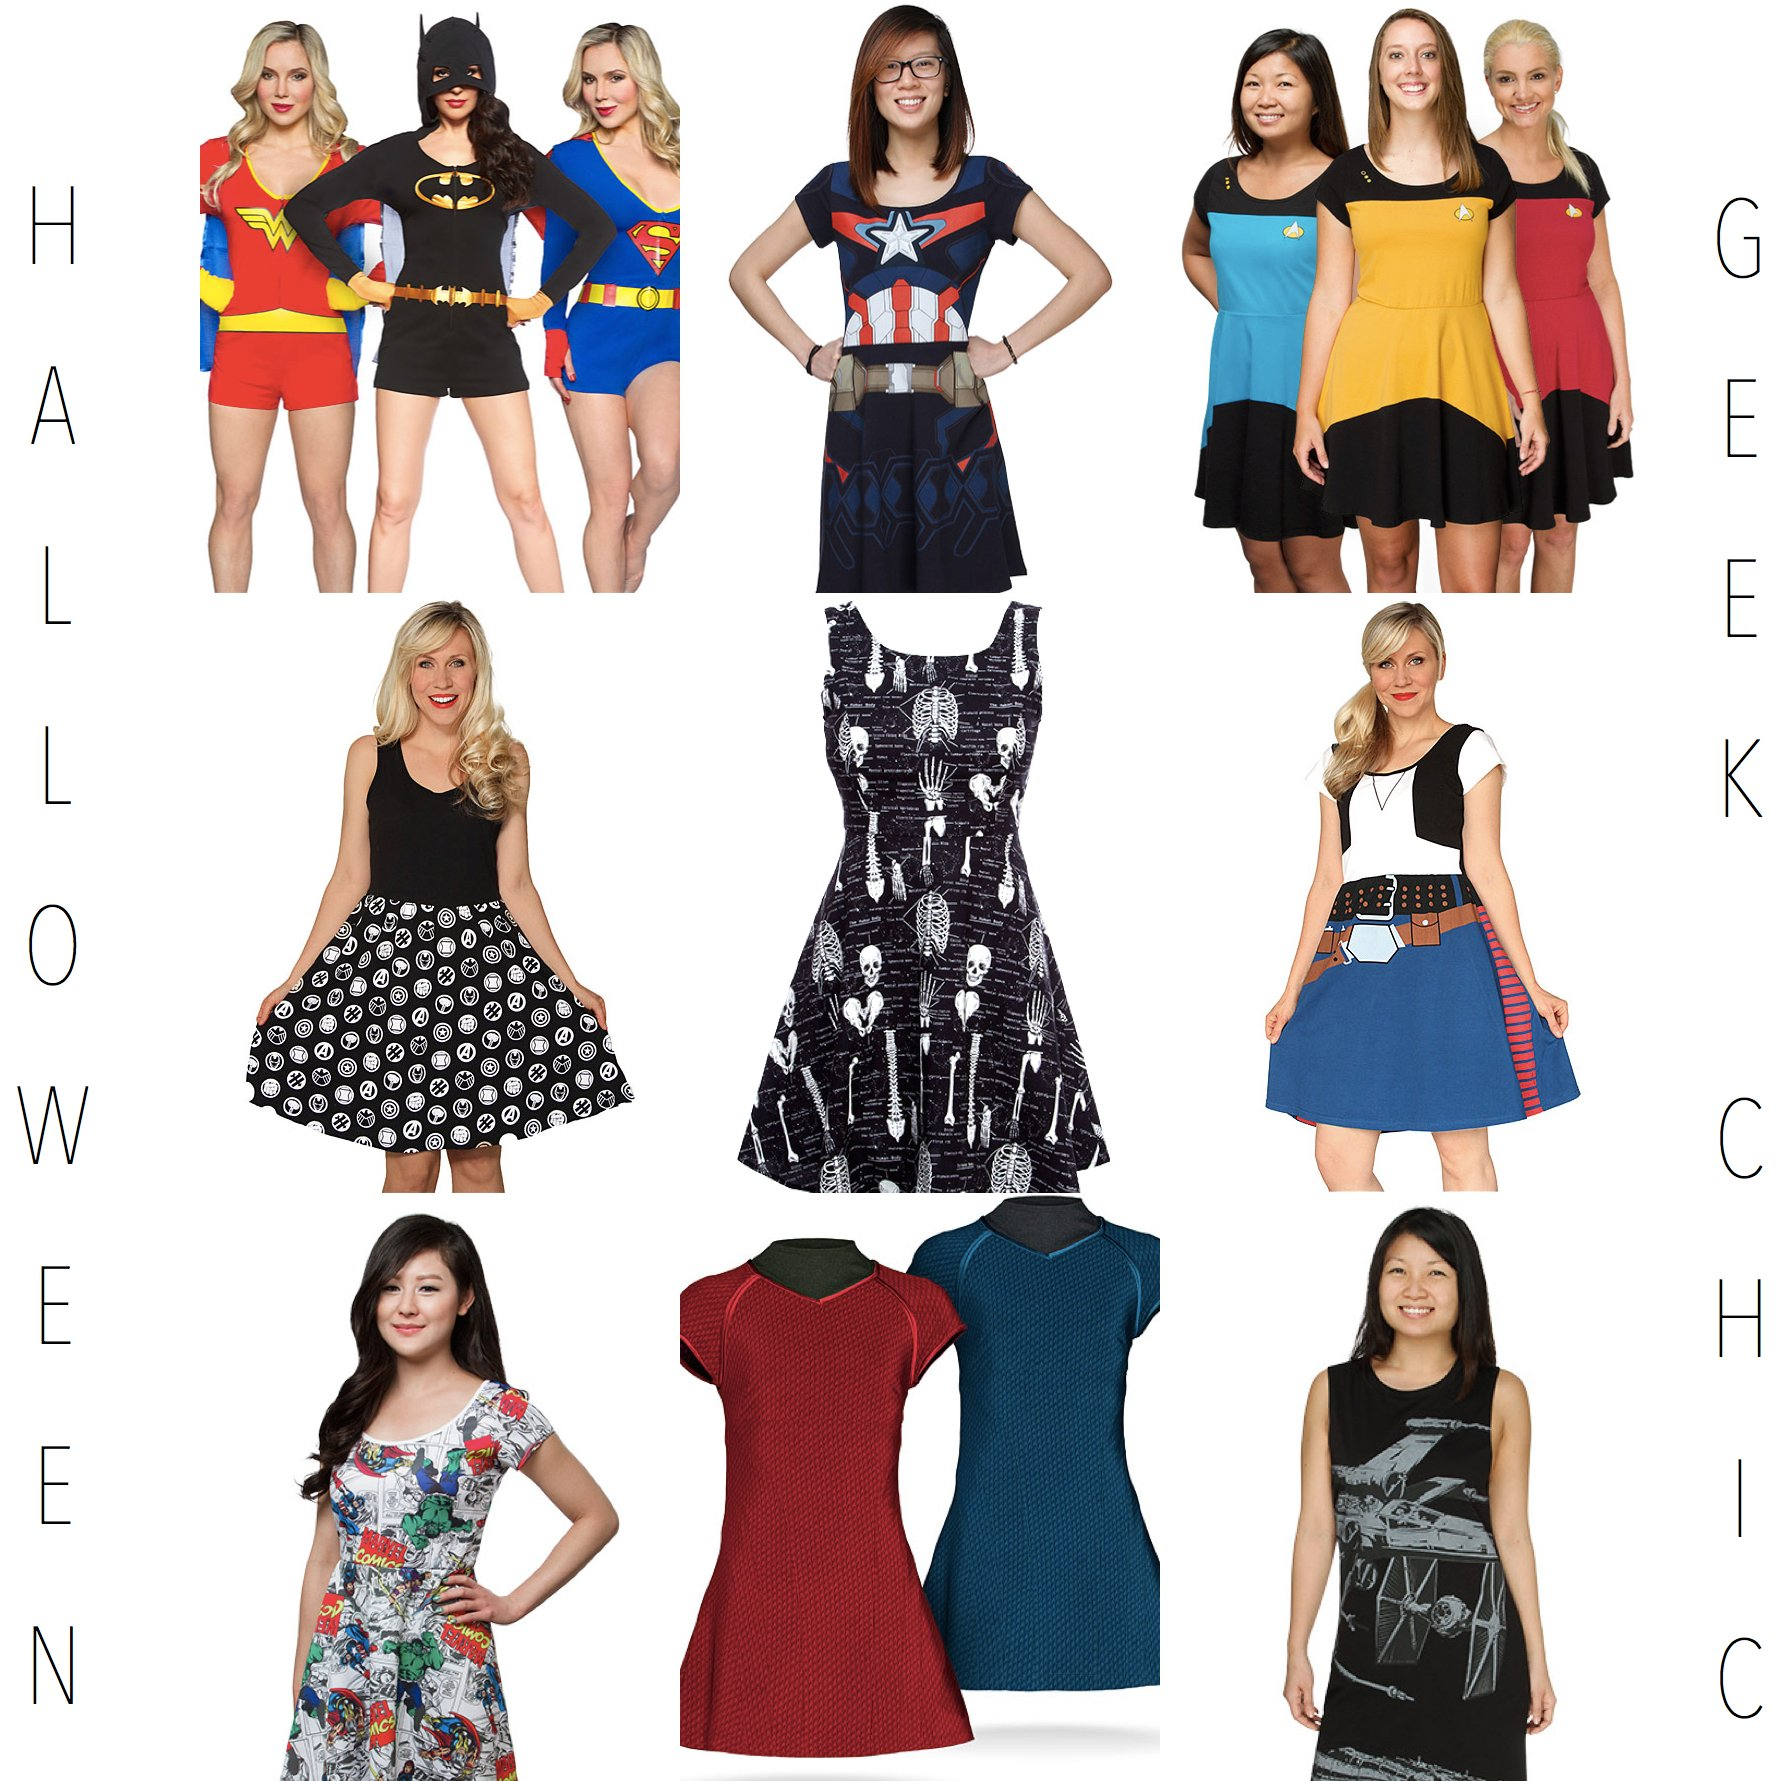 Cute Costumes for Teenage Girls | Teen Costumes  sc 1 st  Party Idea Pros & Cute Costumes for Teenage Girls | Teen Costumes | Halloween ...